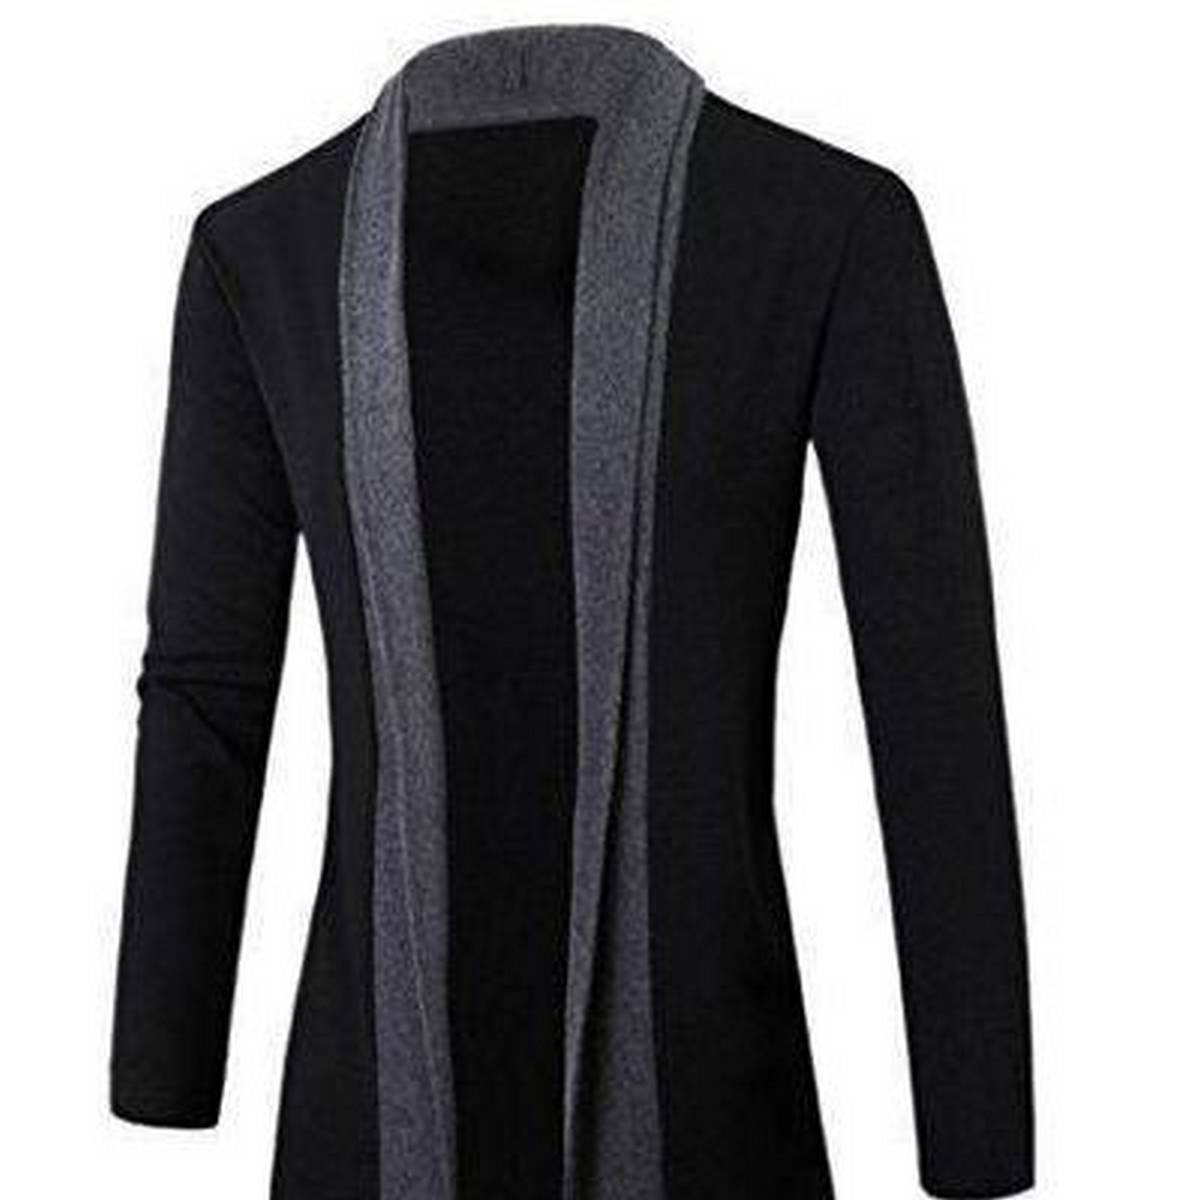 Oxygen Clothing Cardigan Black Charcoal Patch